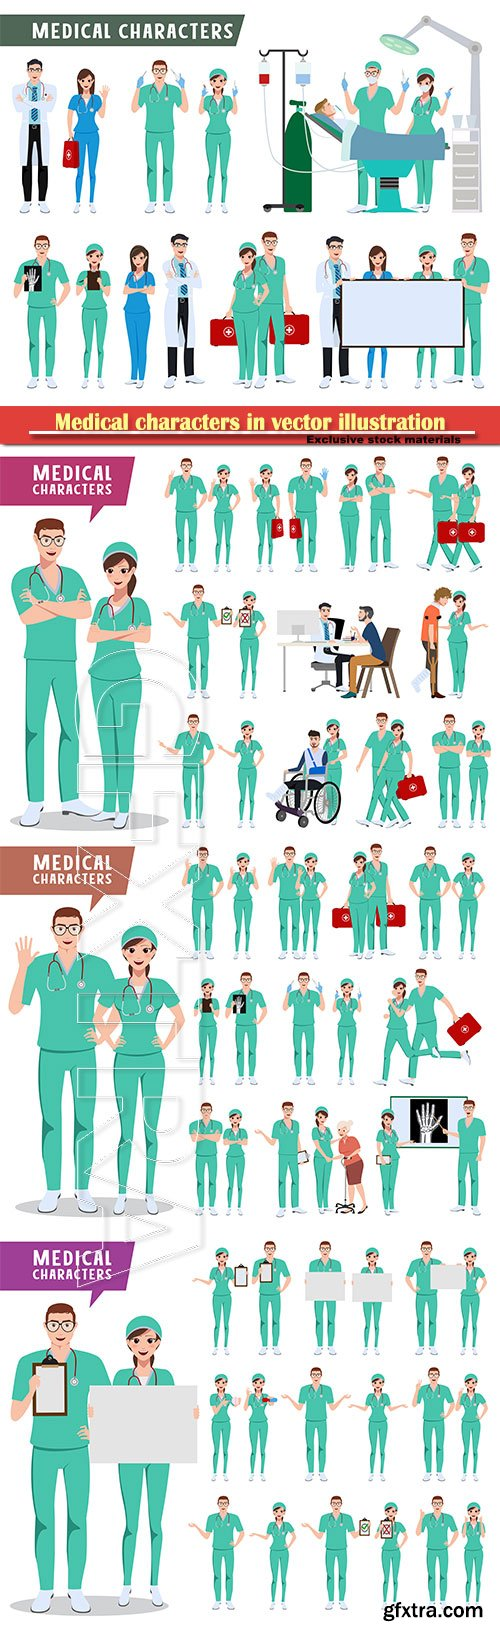 Medical characters in vector illustration